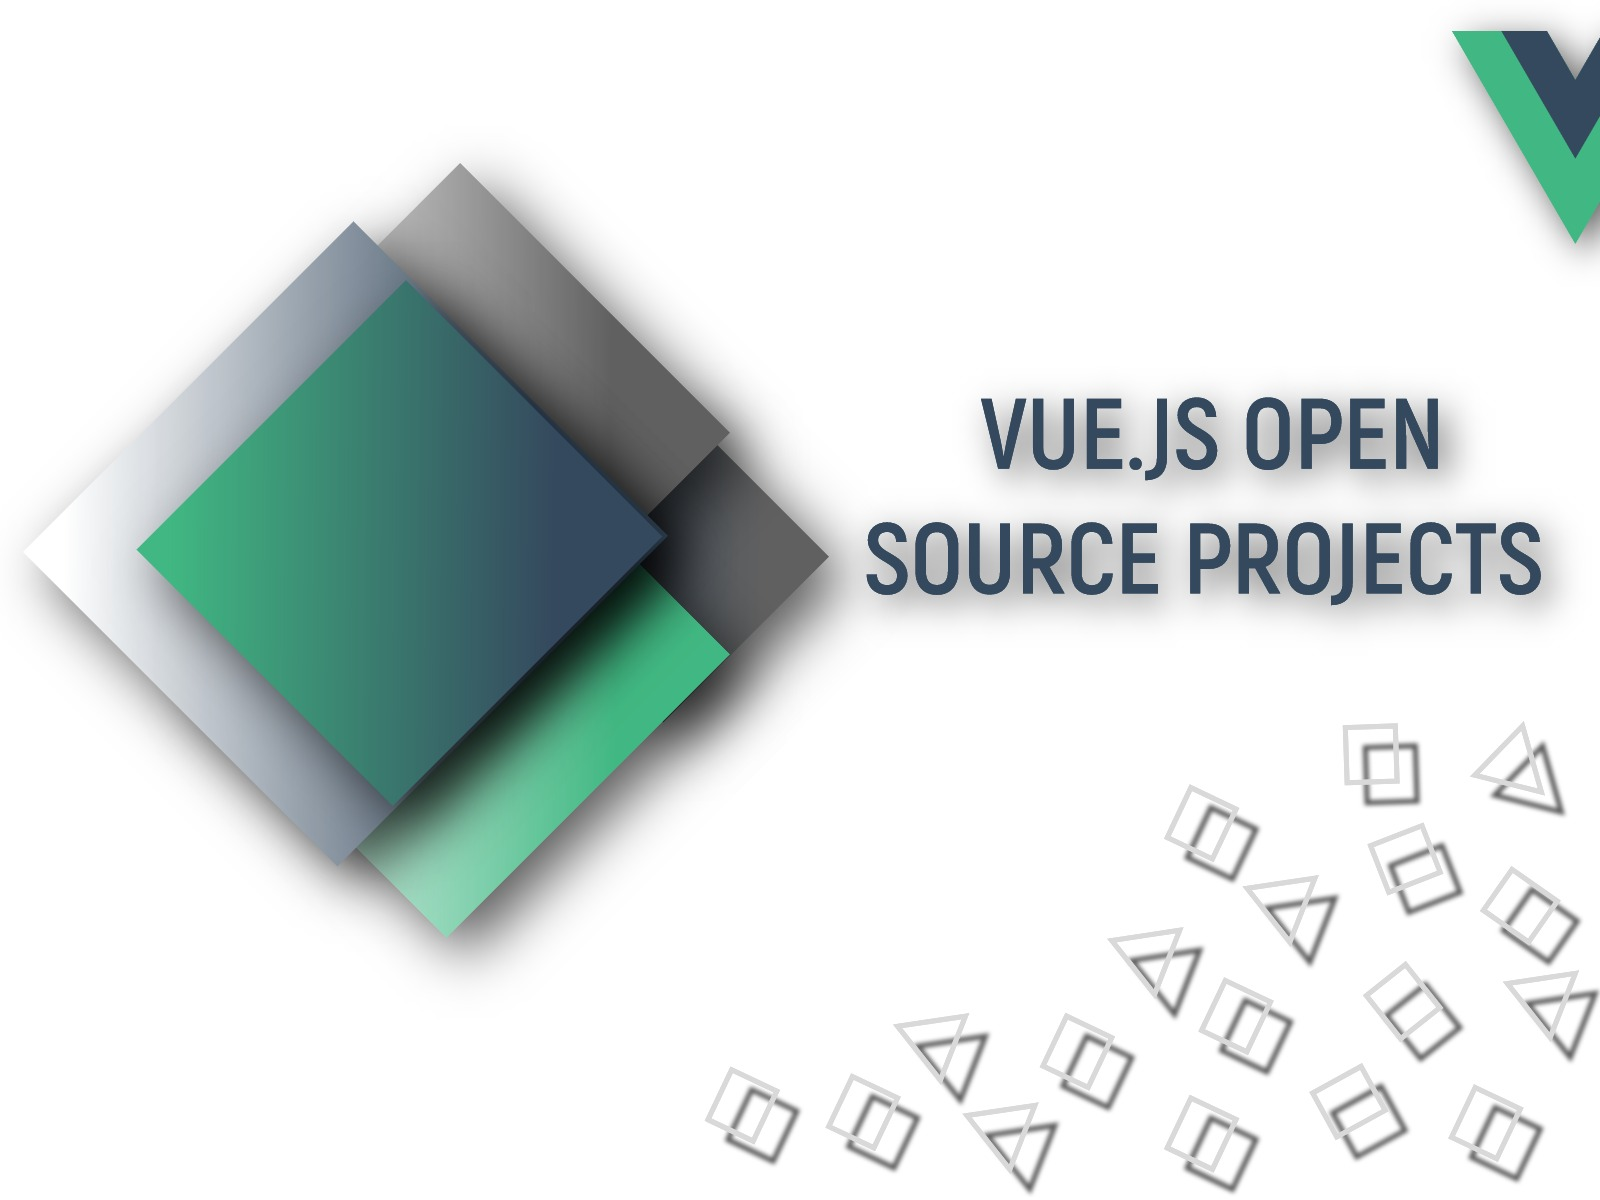 New and Noteworthy Vue.js Open Source Projects. Part 2